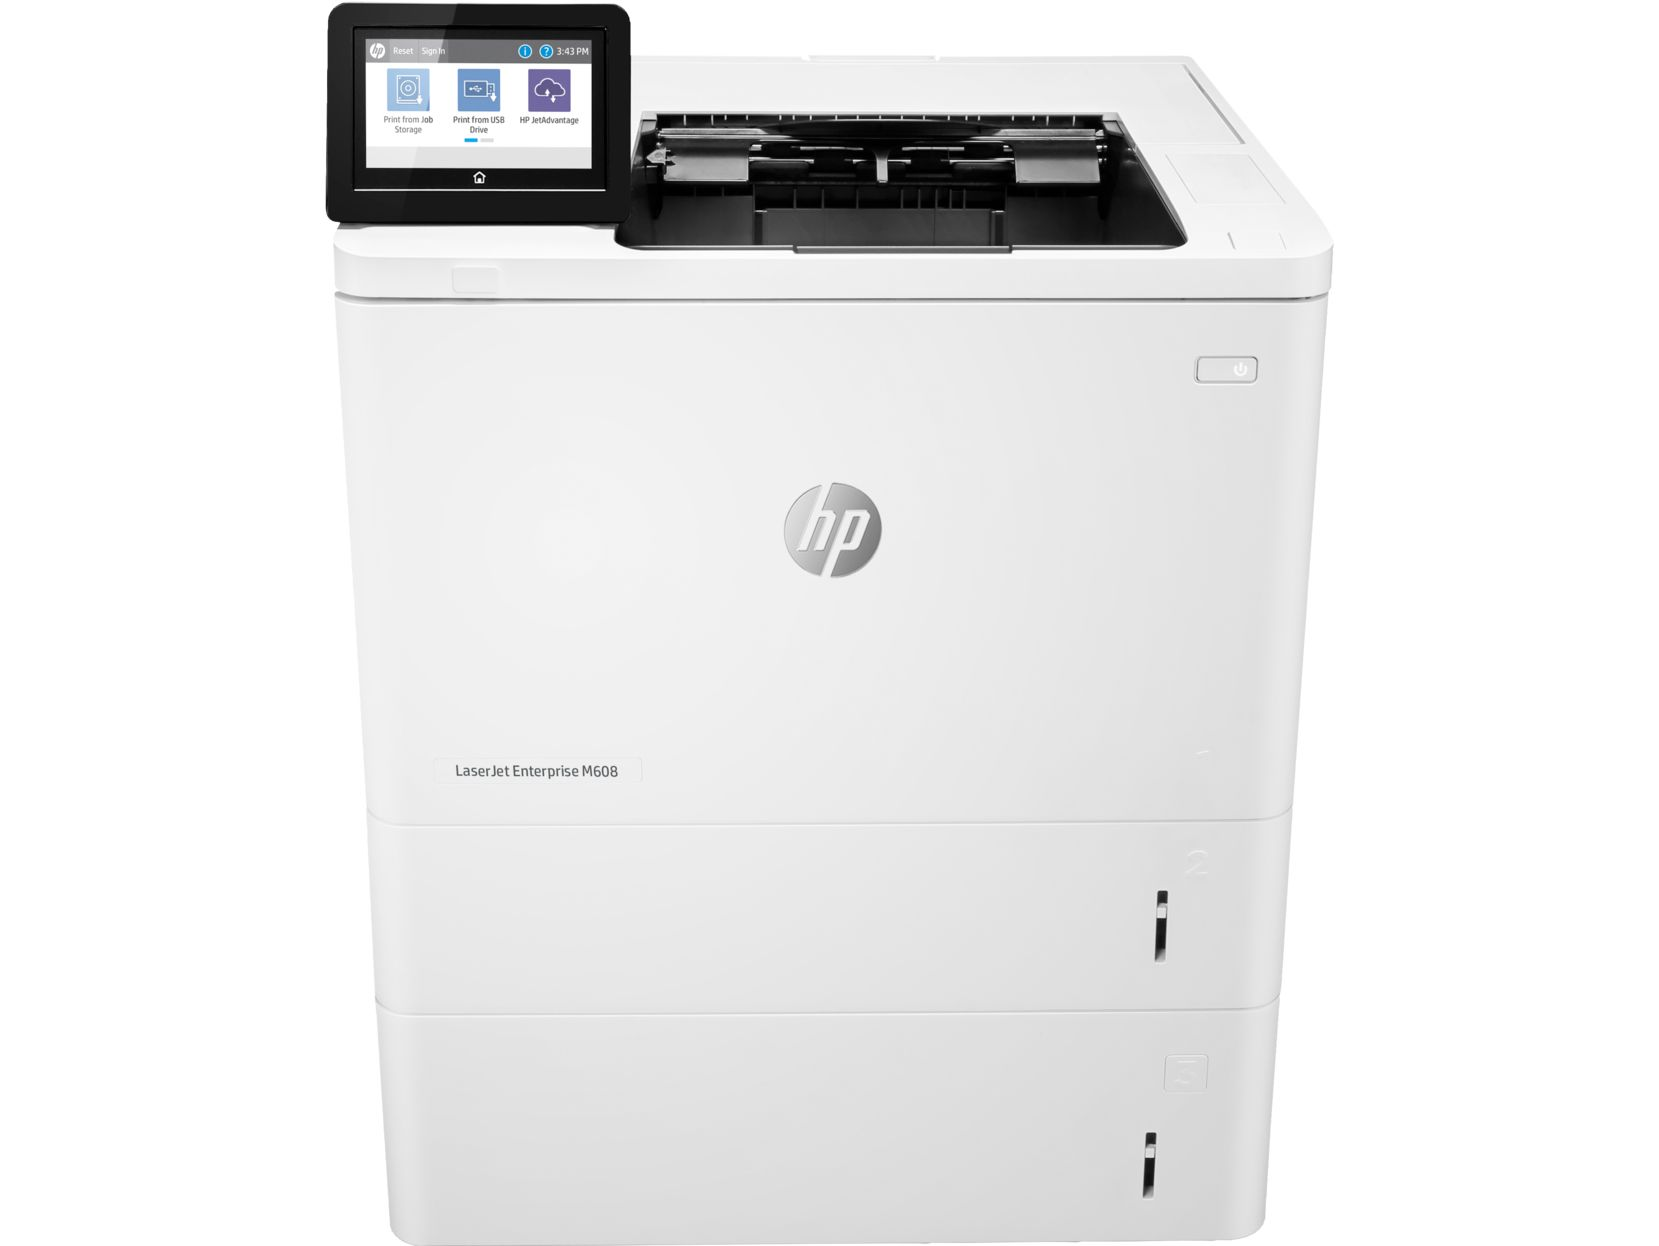 Фото - Принтер лазерный HP LaserJet Enterprise 600 M608x (K0Q19A) A4 Duplex Net WiFi принтер лазерный brother hl l8260cdw hll8260cdwr1 a4 duplex net wifi